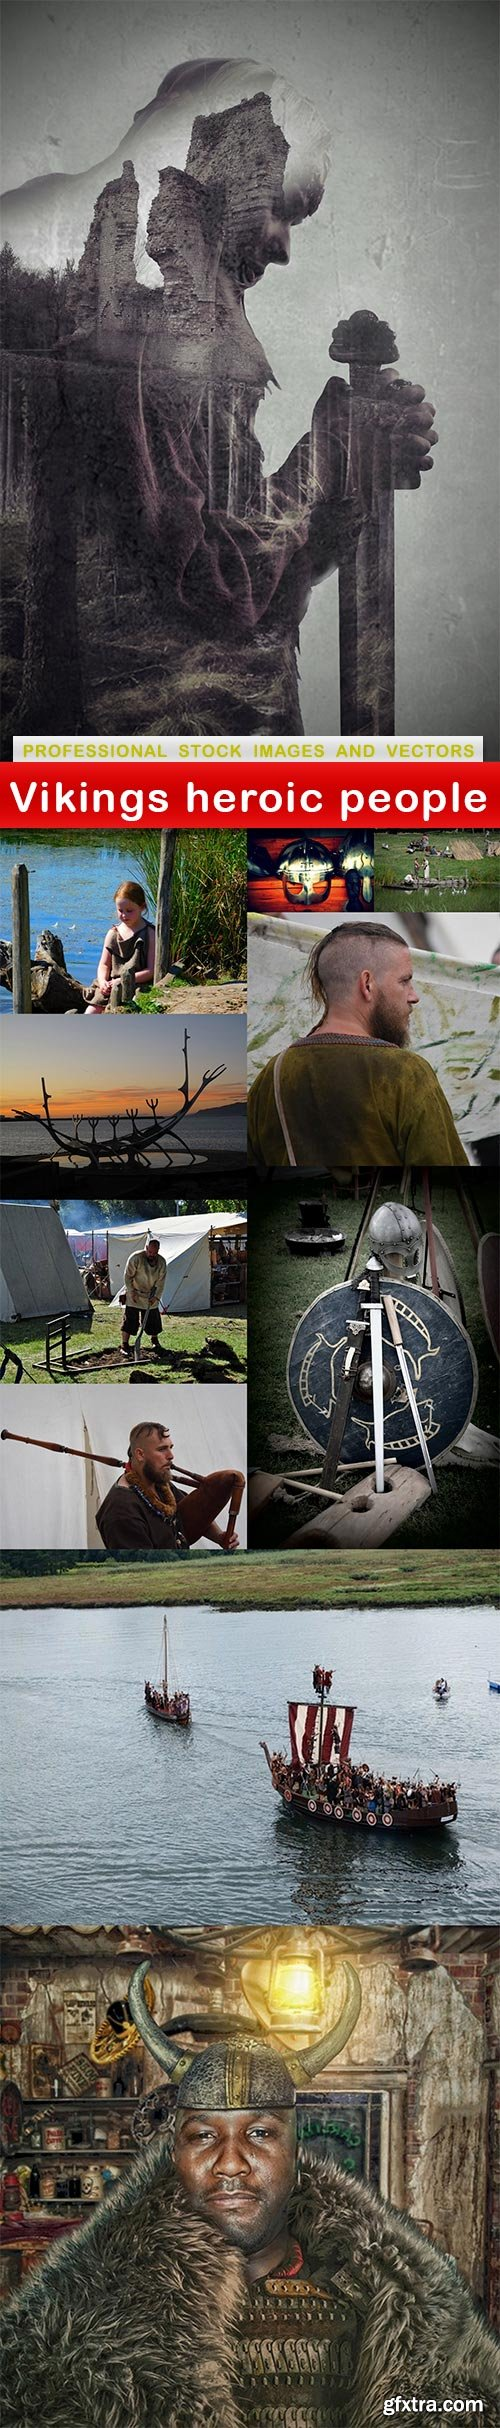 Vikings heroic people - 11 UHQ JPEG